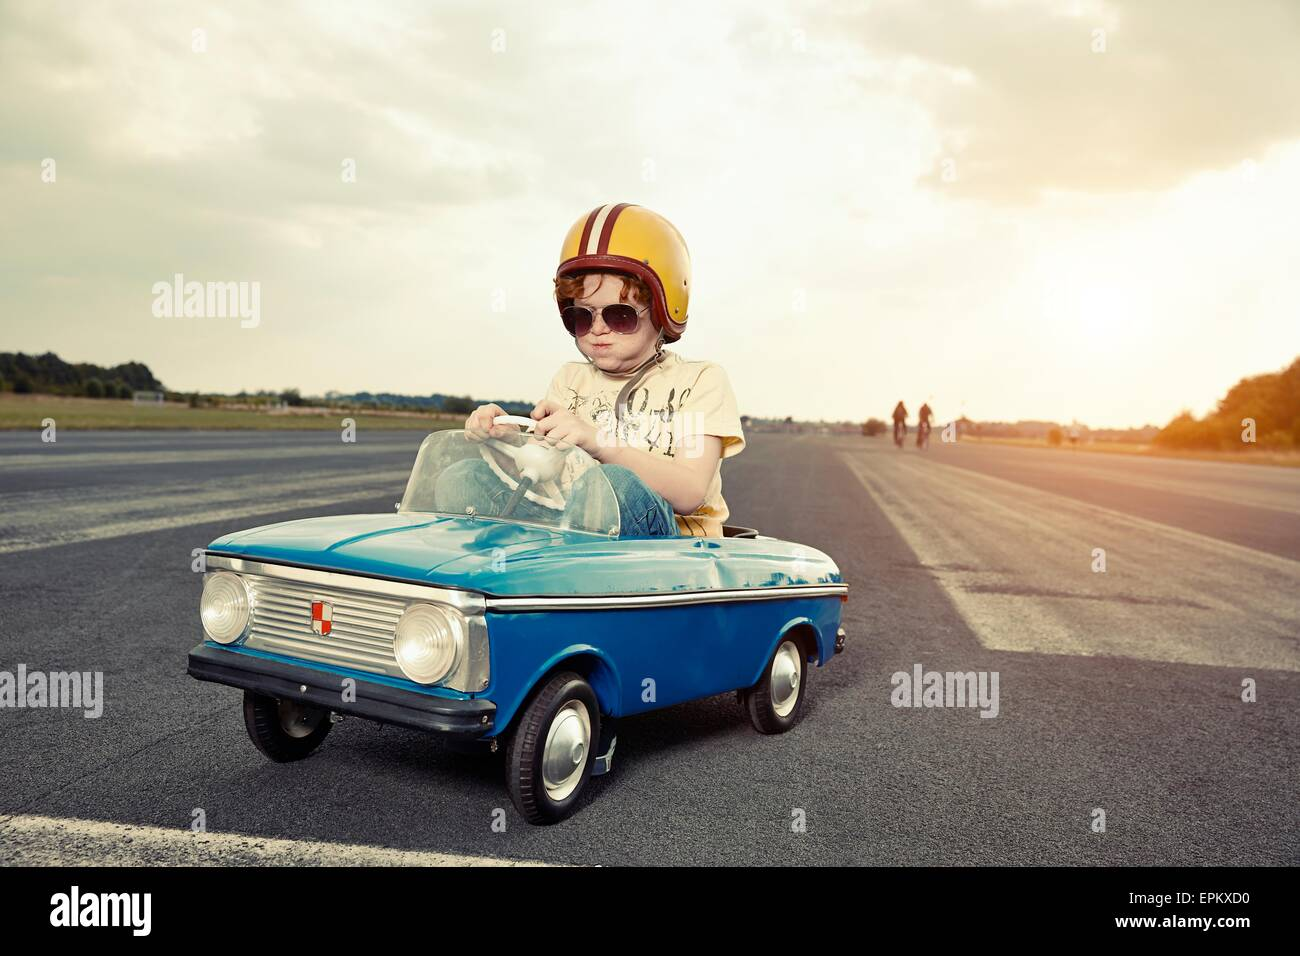 Boy in pedal car on race track - Stock Image